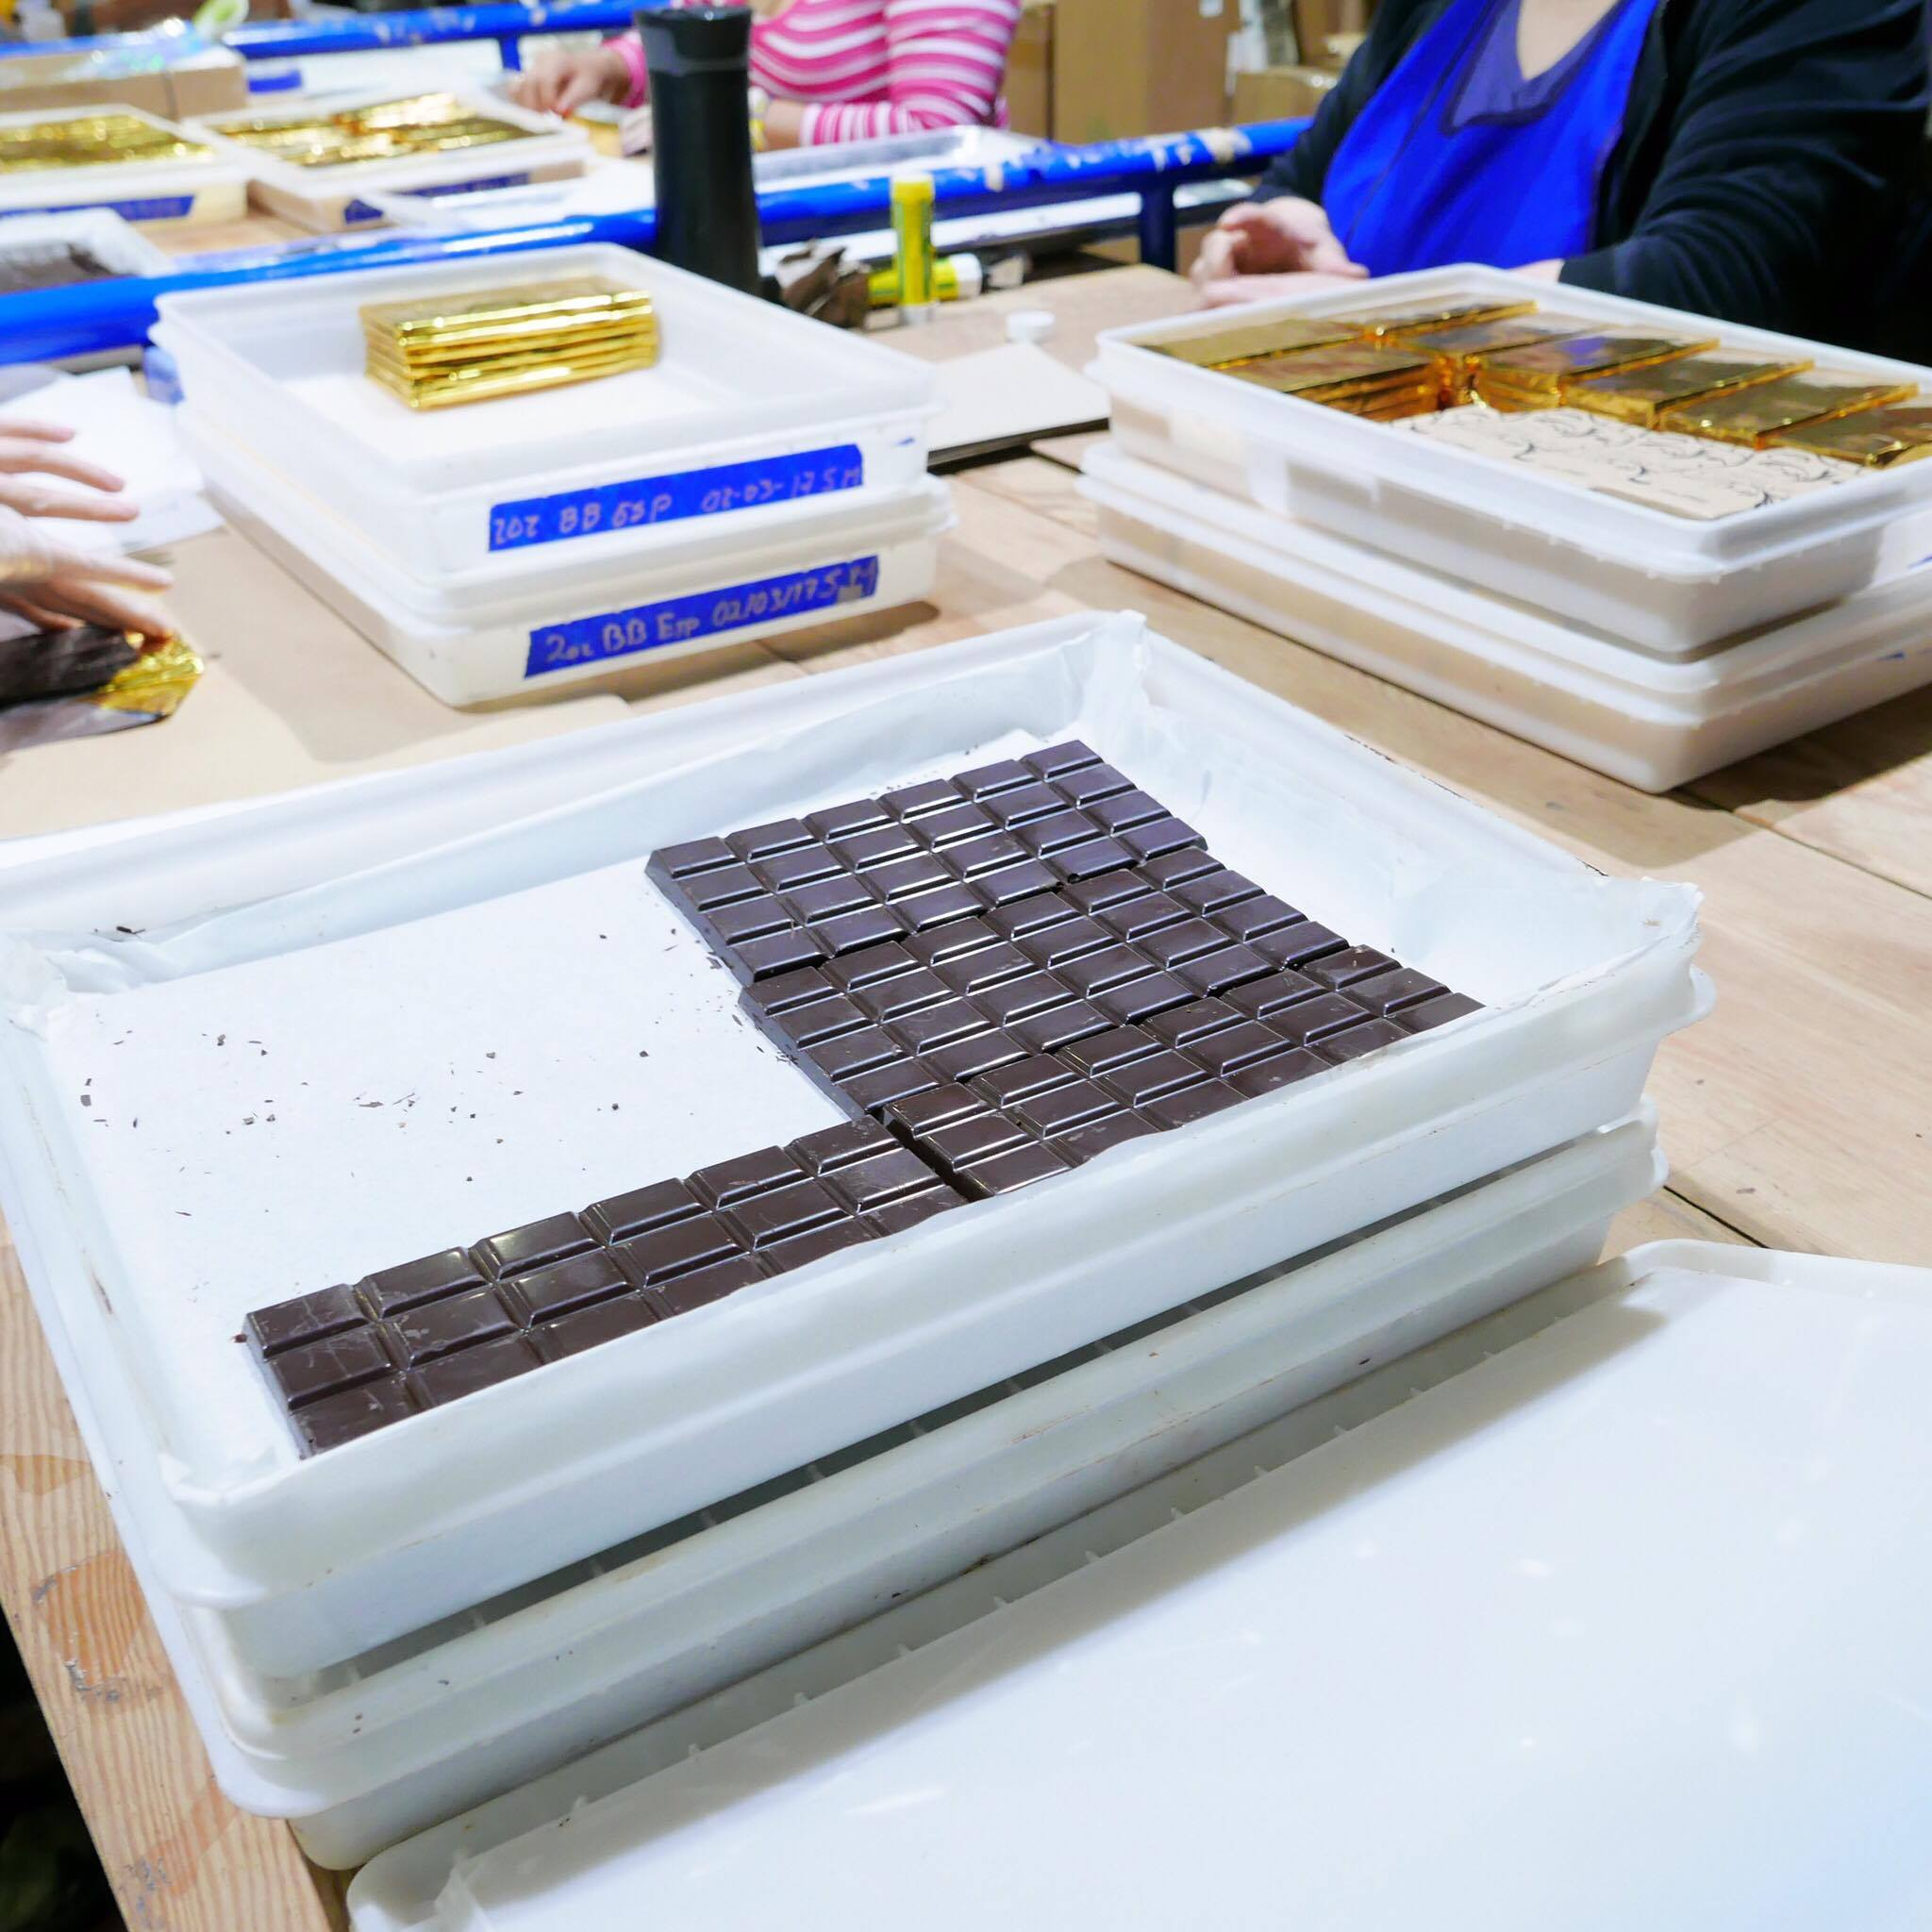 Chocolate being hand packaged